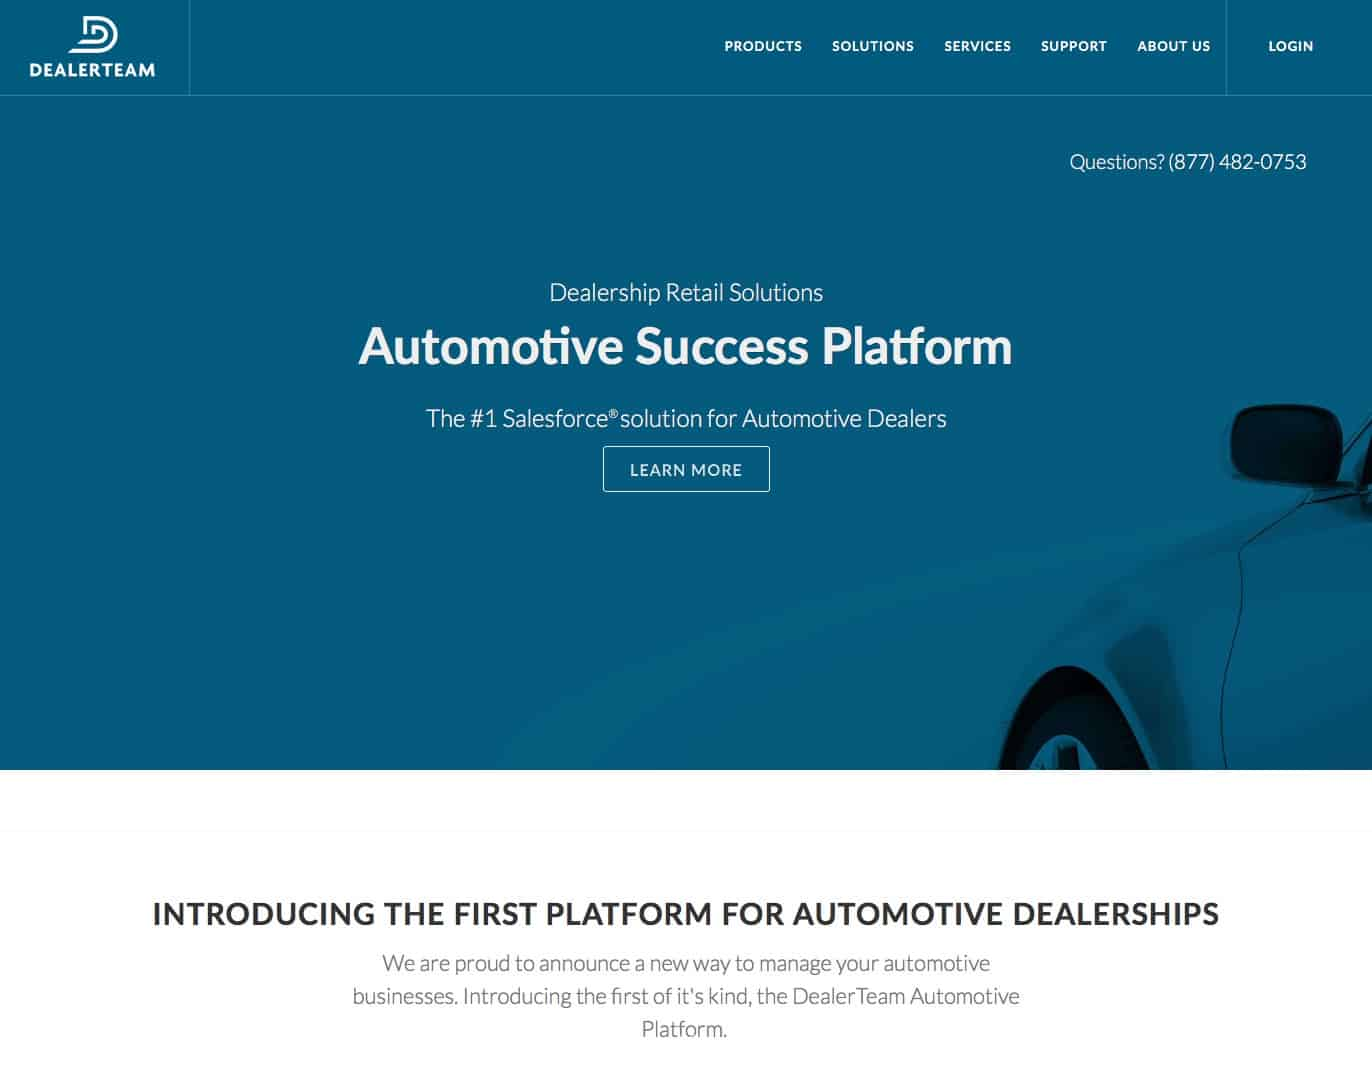 Dealerteam website